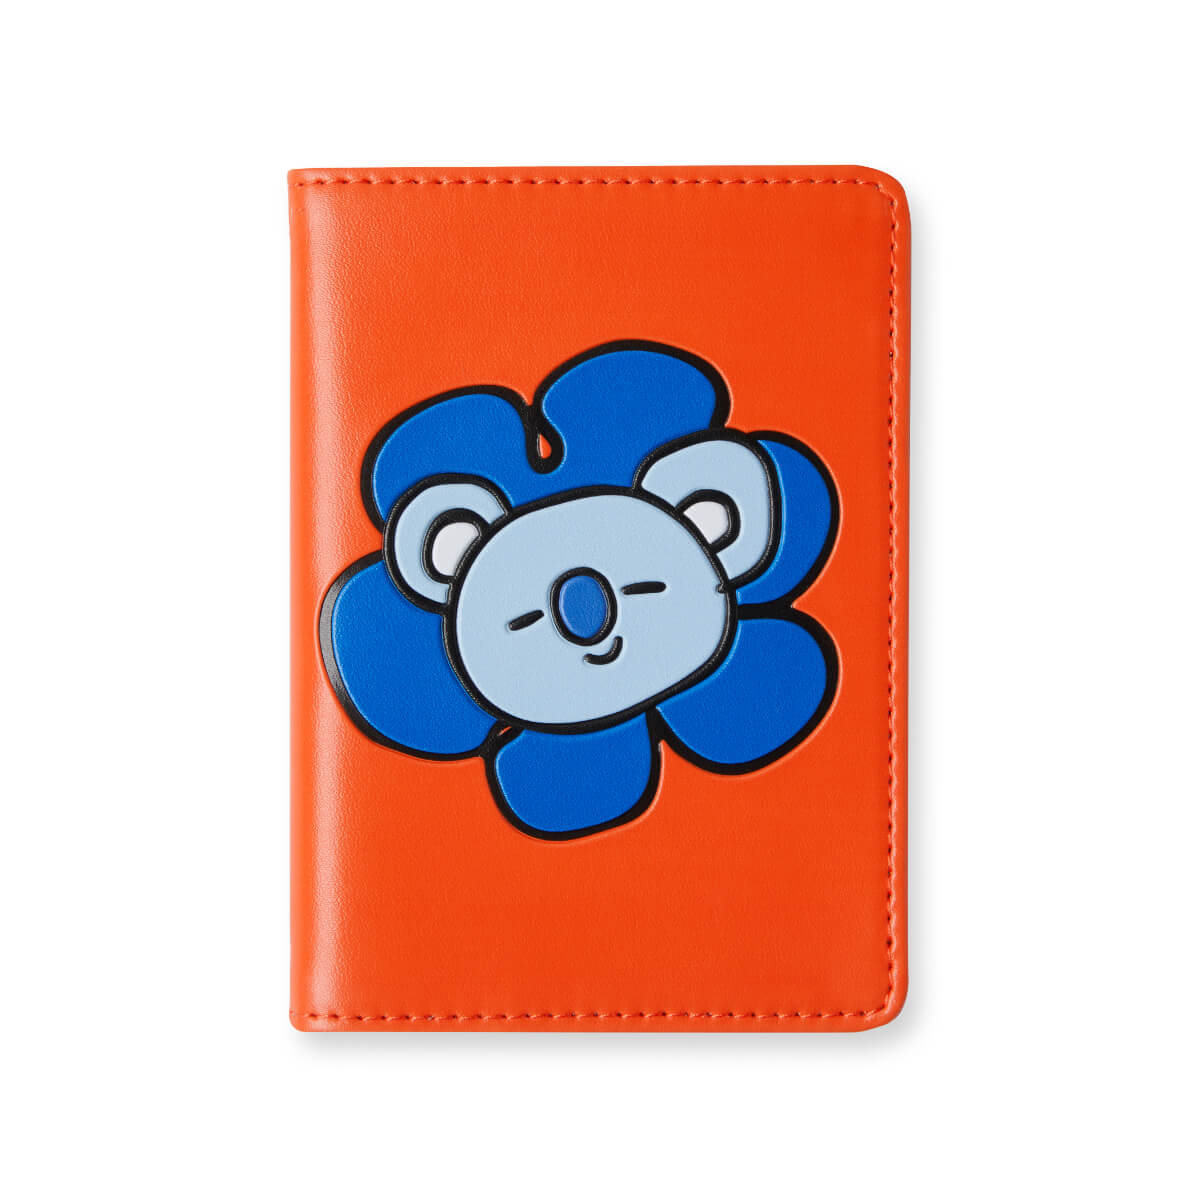 BT21 KOYA Flower Graphic Passport Cover